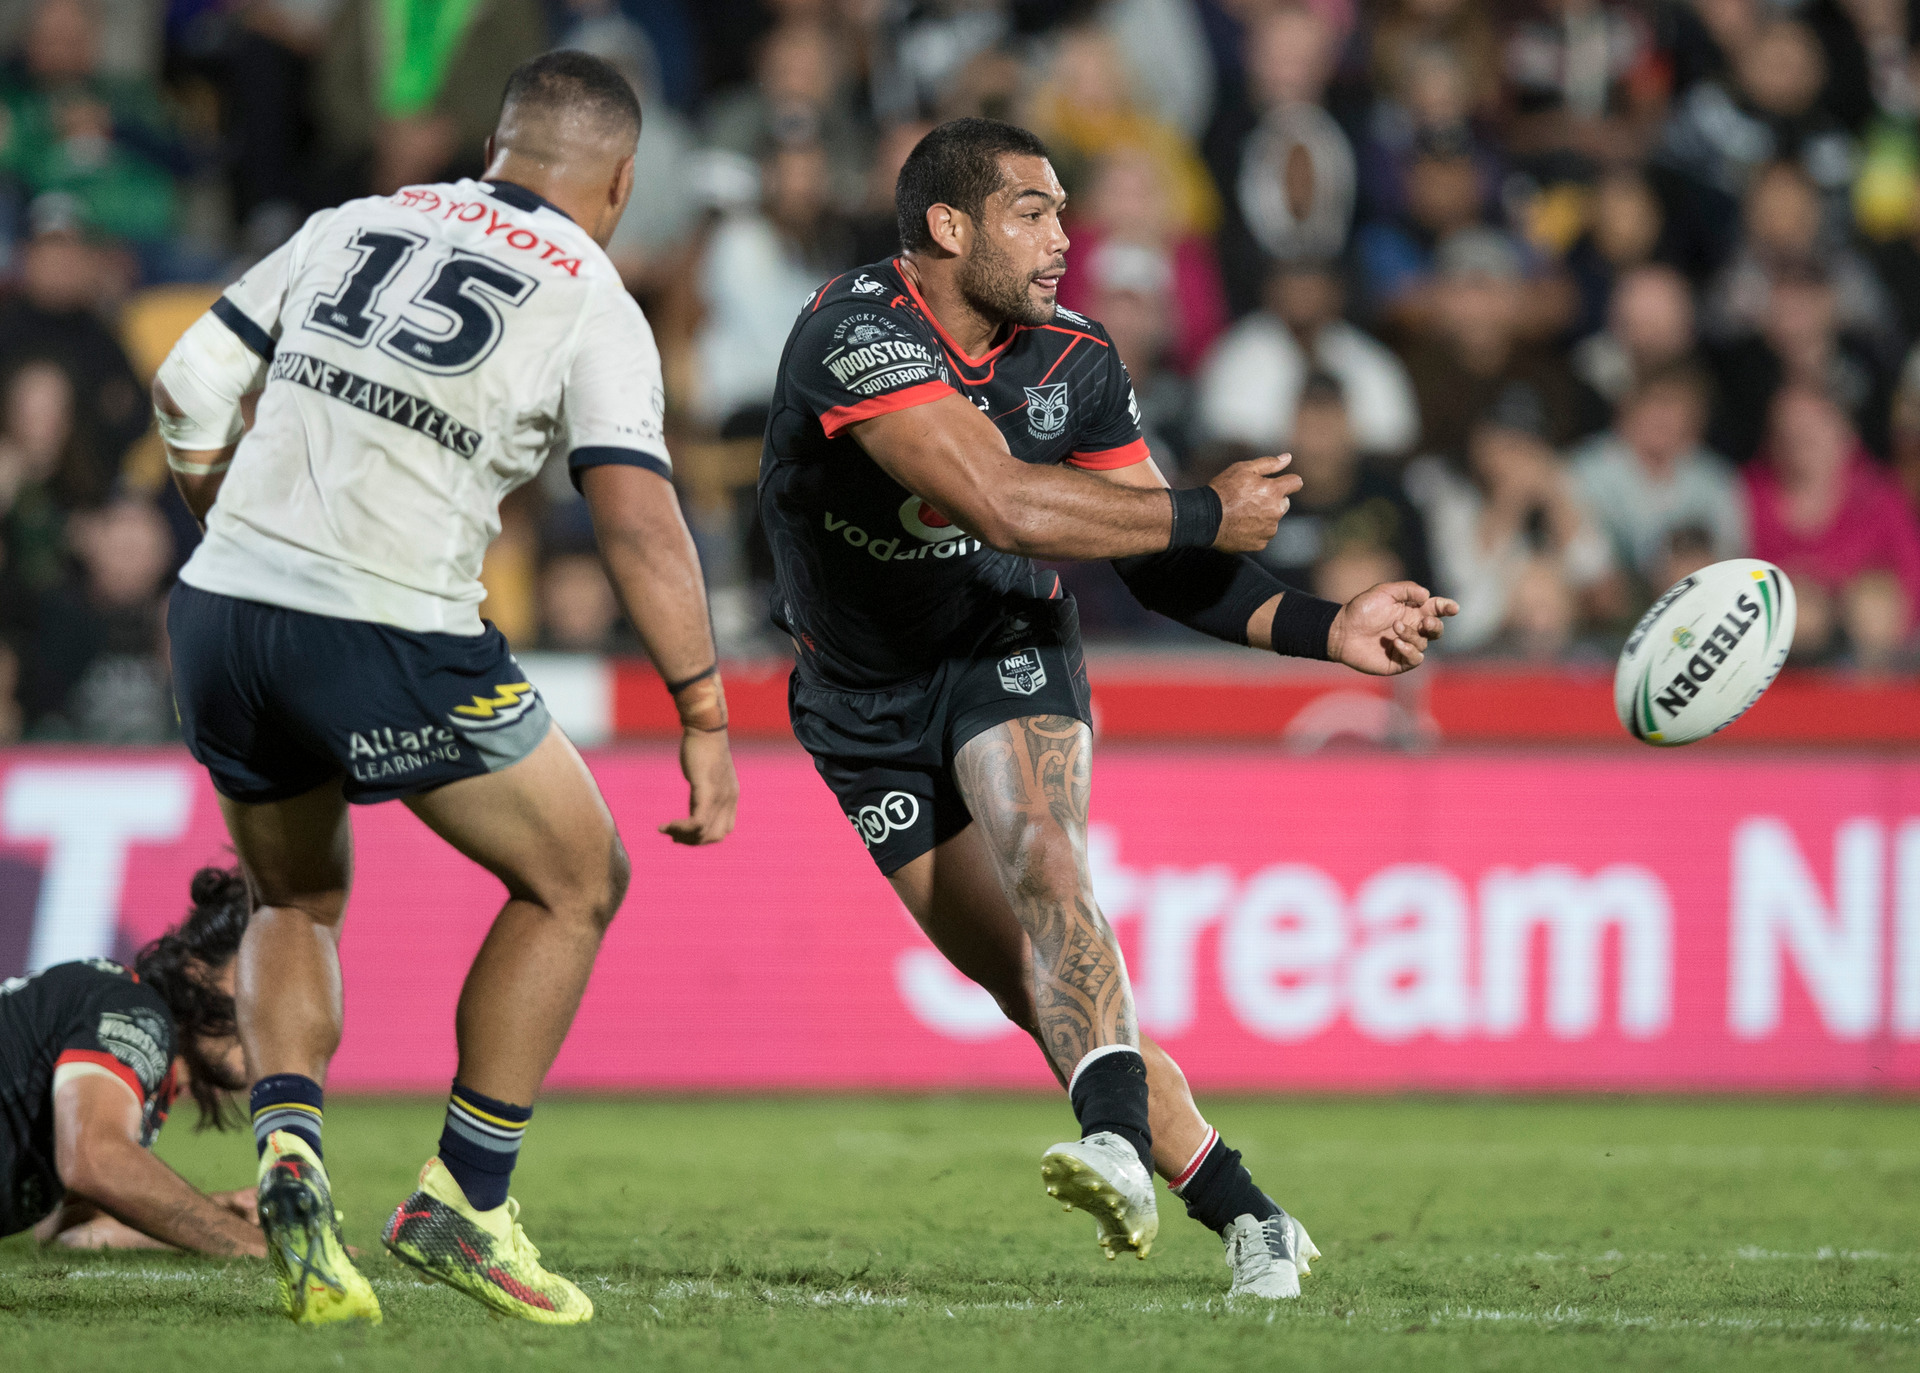 NZ Warriors to take on West Tigers in Whangārei in March